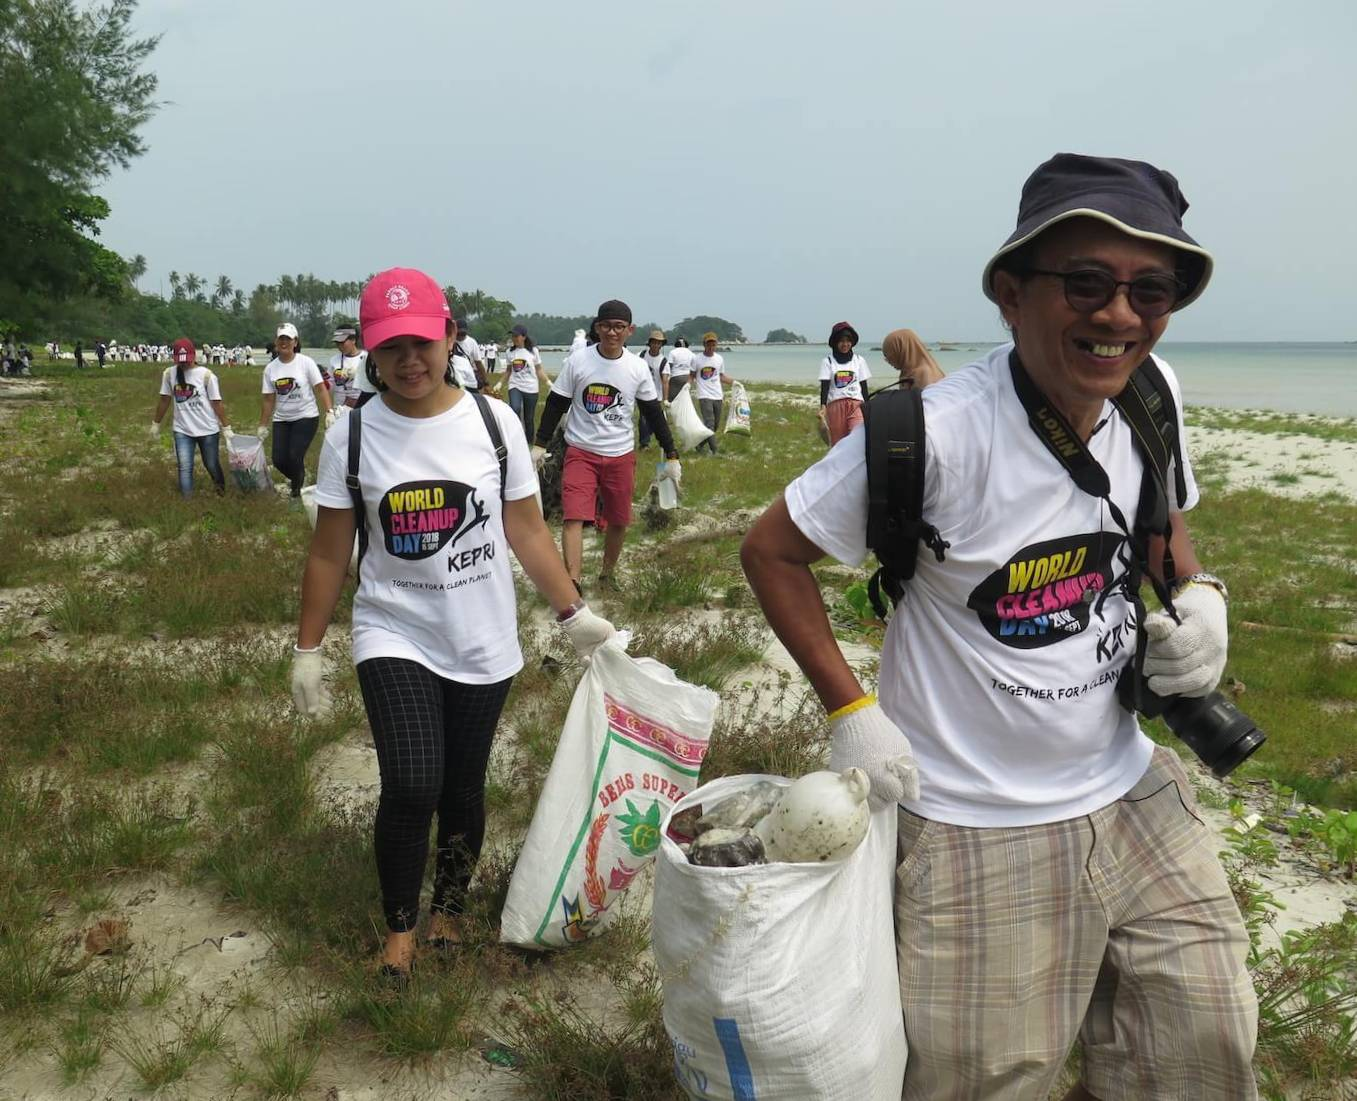 Many indonesians smiling, wearing World Cleanup Day shirts, walking on a beach, carrying bags full of plastic garbage.